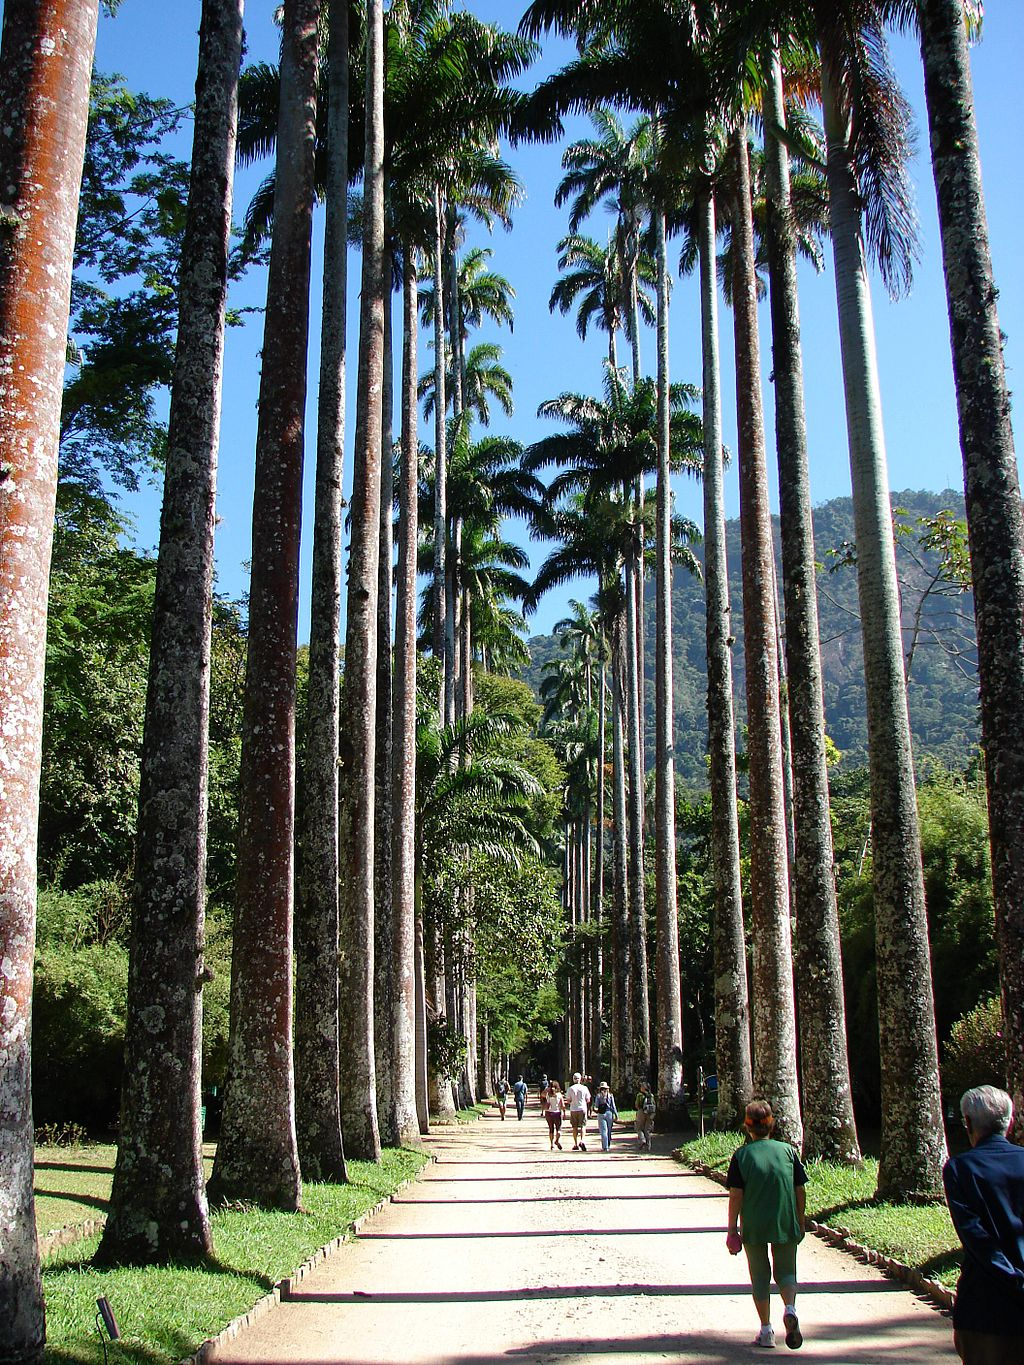 The most iconic line of trees in the Botanical Gardens in Rio |© Zimbres/WikiCommons